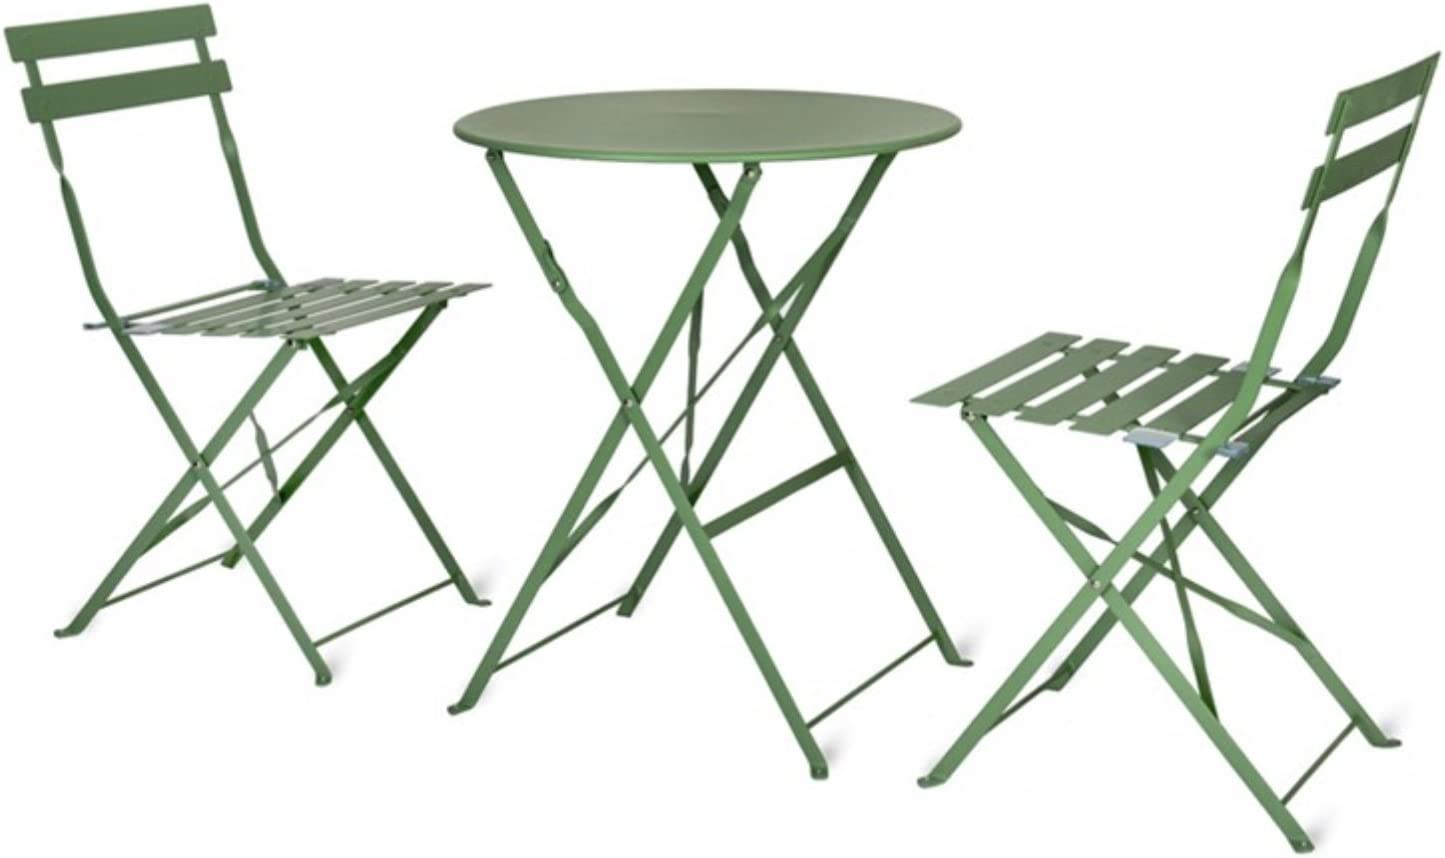 CKB LTD Garden Bistro Set Metal Outdoor - GREEN - Deluxe Weatherproof 10  Piece Garden Furniture Table And Folding Chairs For Small Patio or Balcony